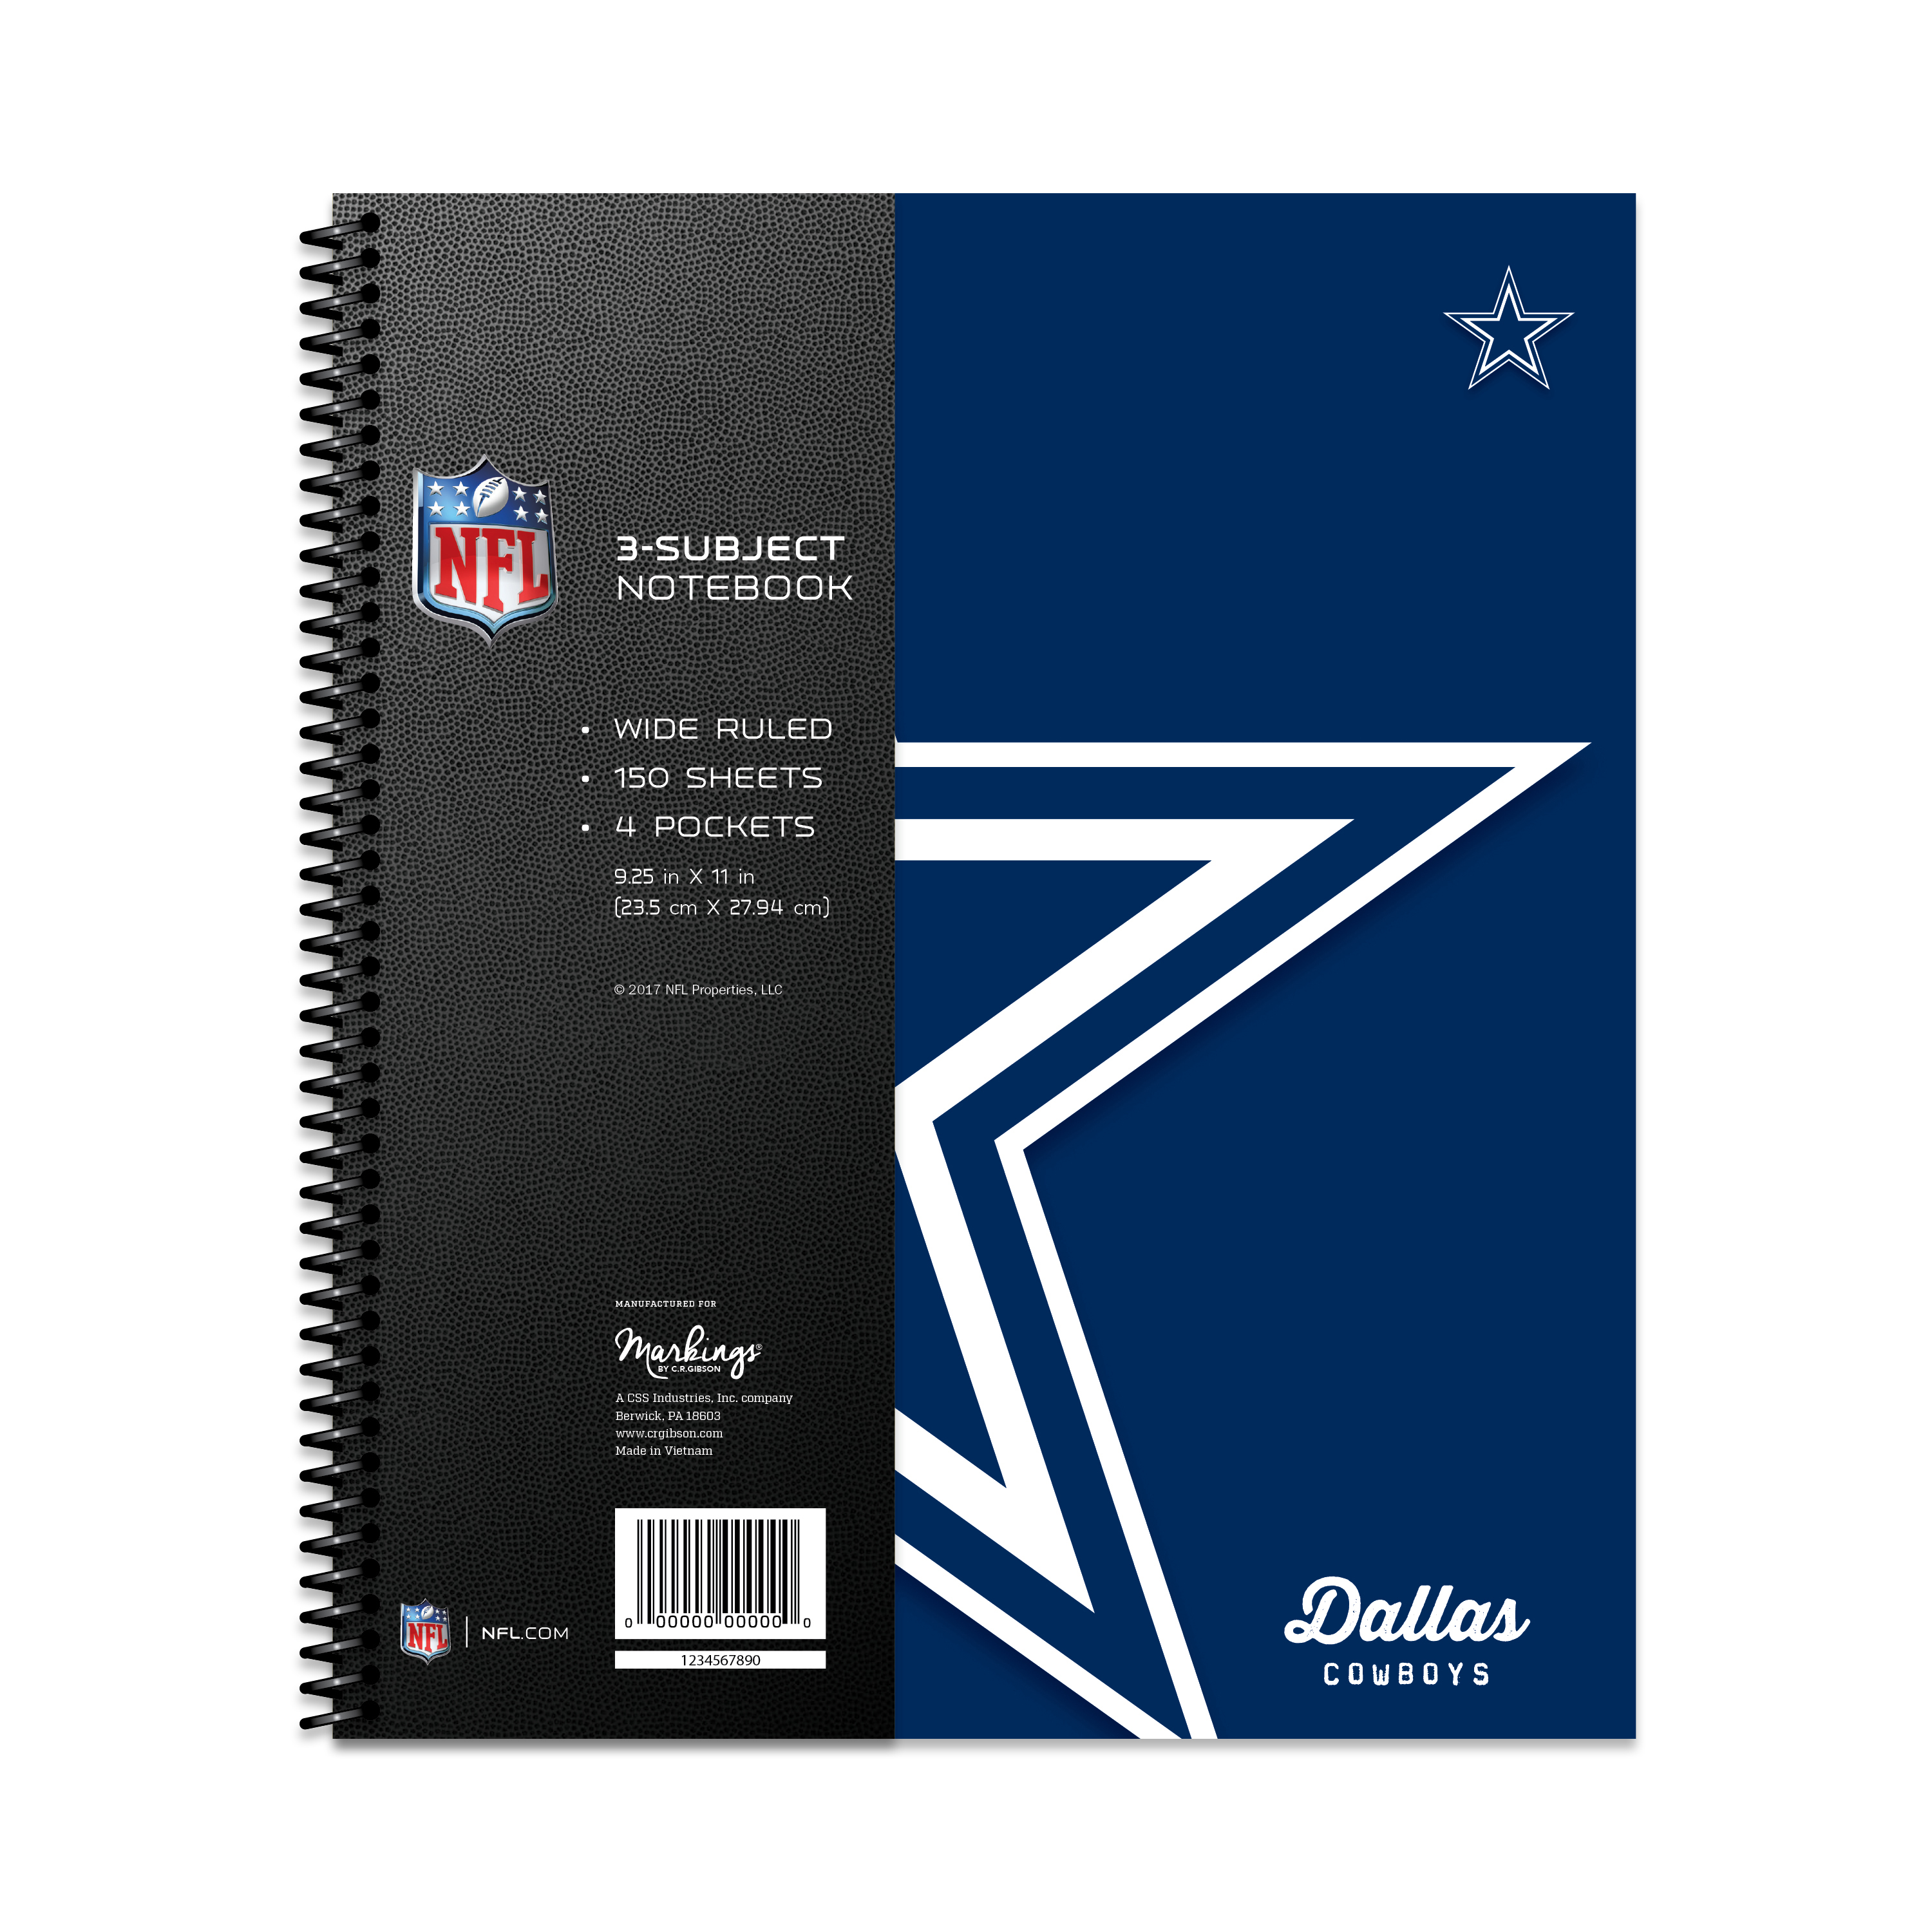 DALLAS COWBOYS CLASSIC 3-SUBJECT NOTEBOOK